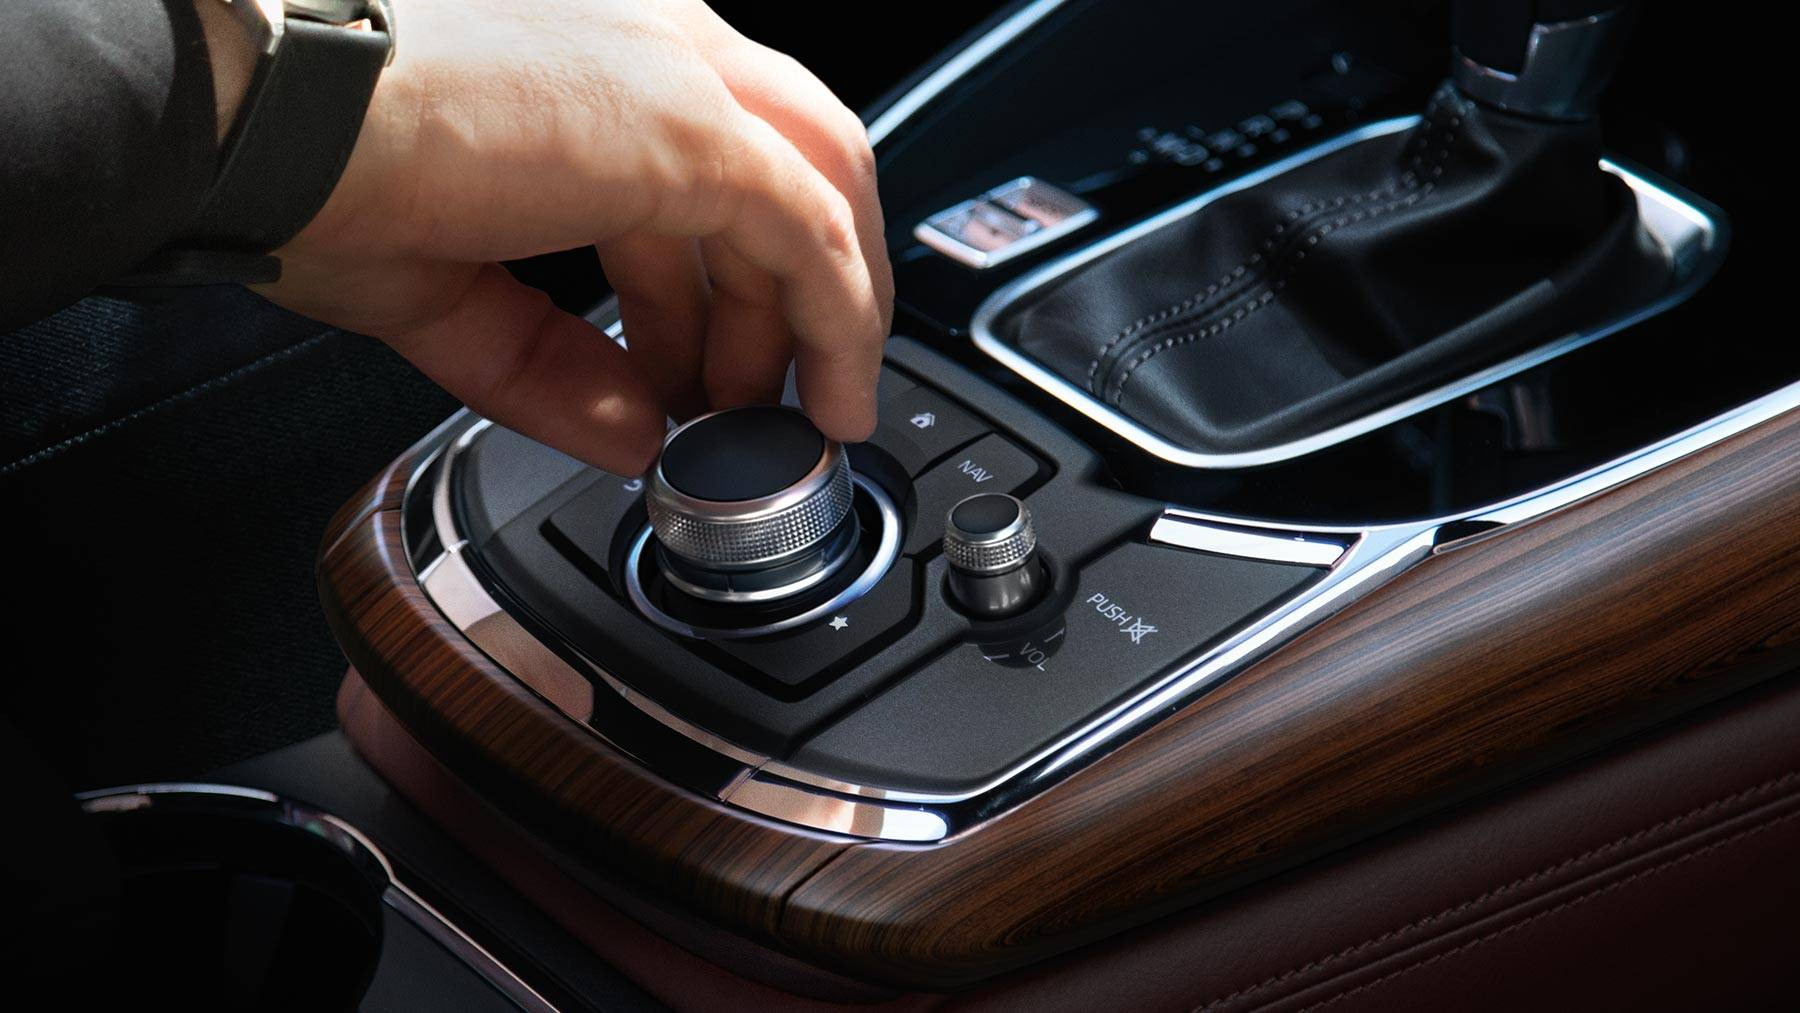 Easily Choose Your Media When Driving in the Mazda CX-9!